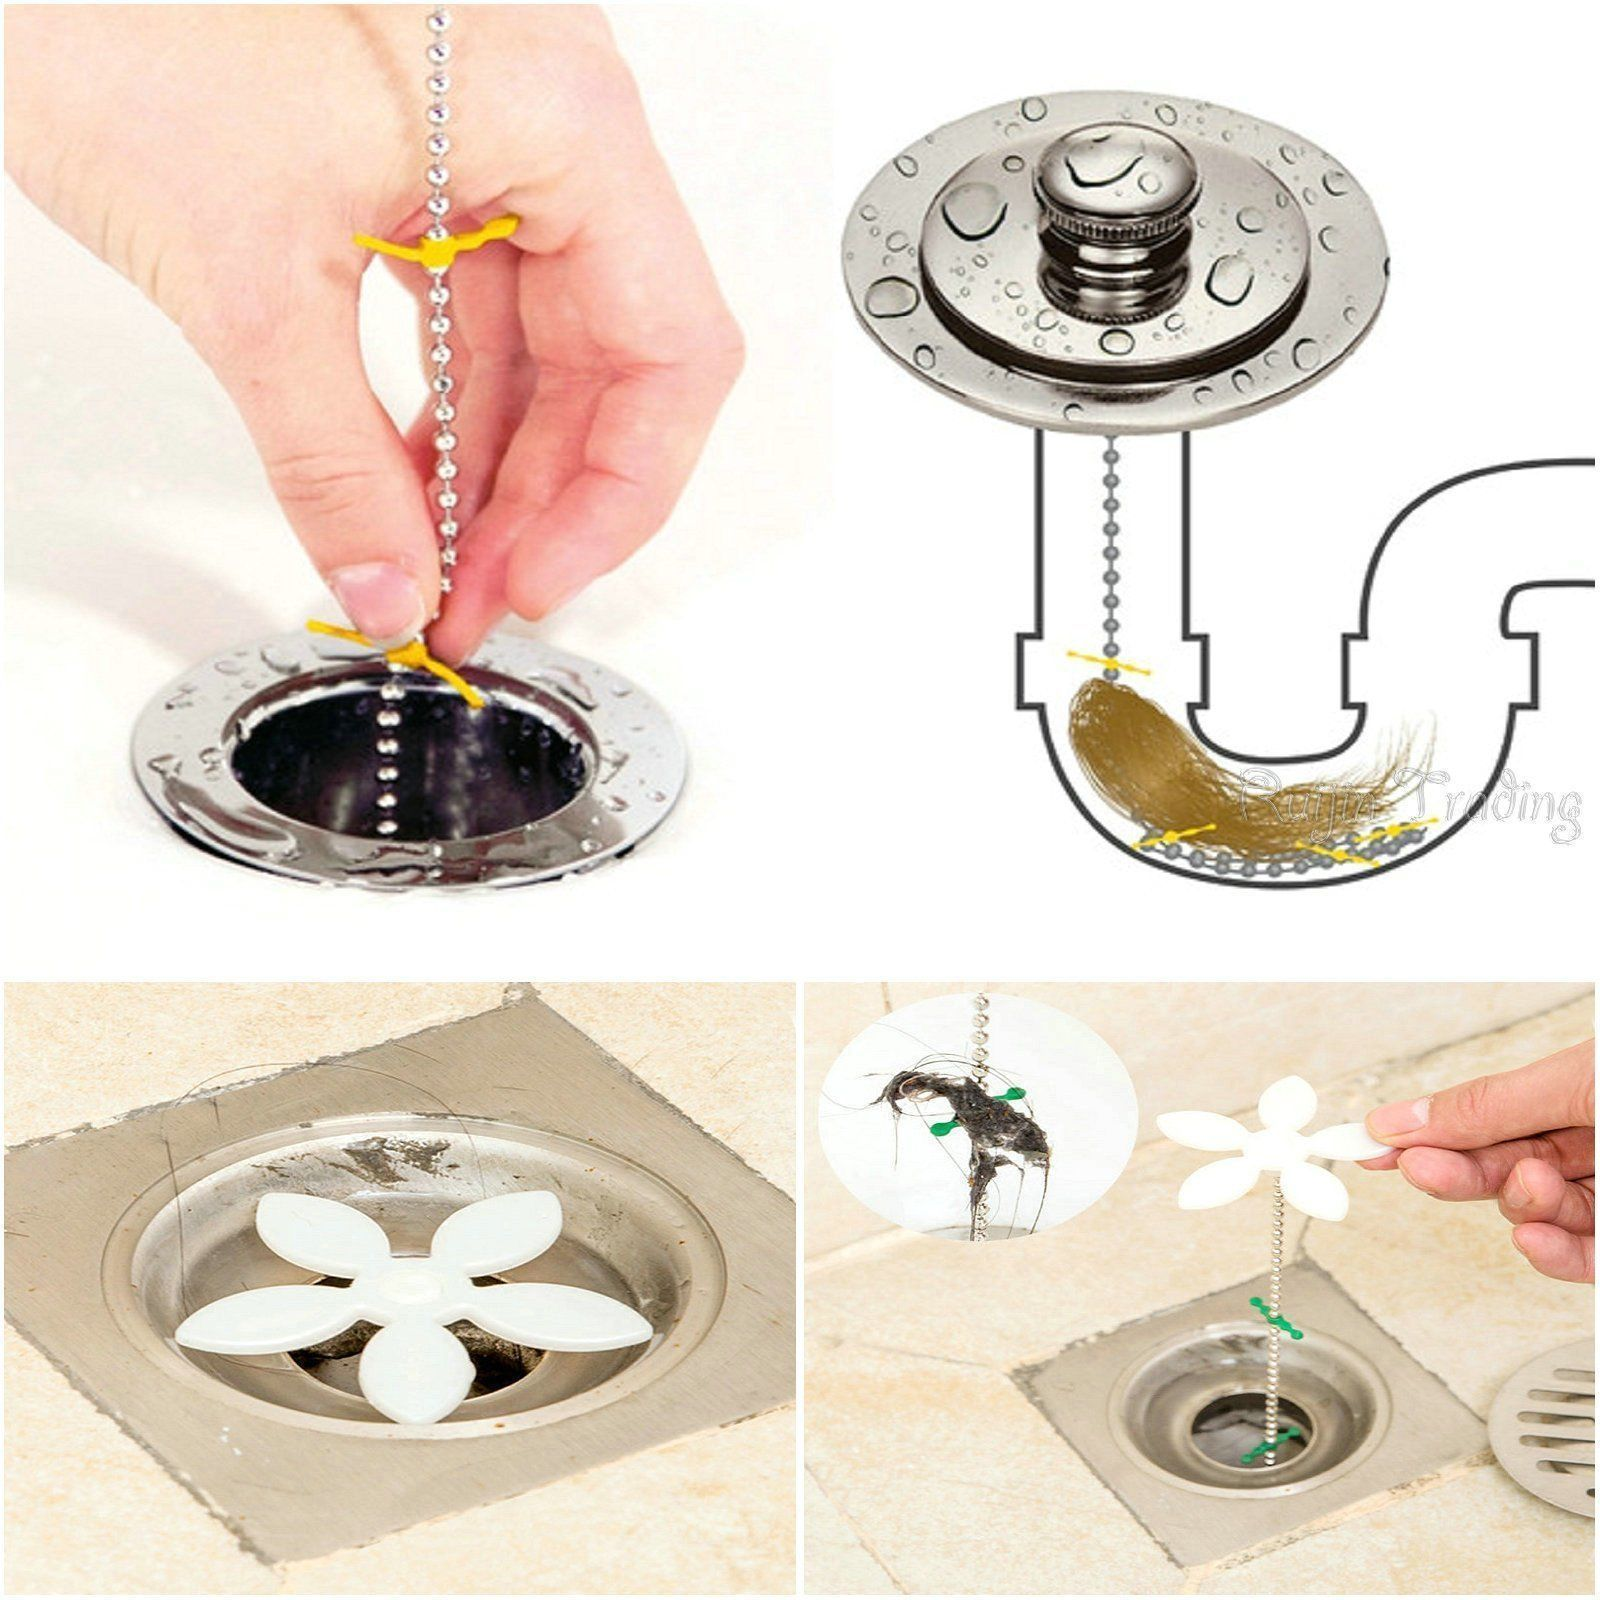 2 89 Shopsphera Hot Best Selling Item For You Hair Clog Remover Ebay Home Garden With Images Shower Drain Cleaning Tools Shower Cleaner